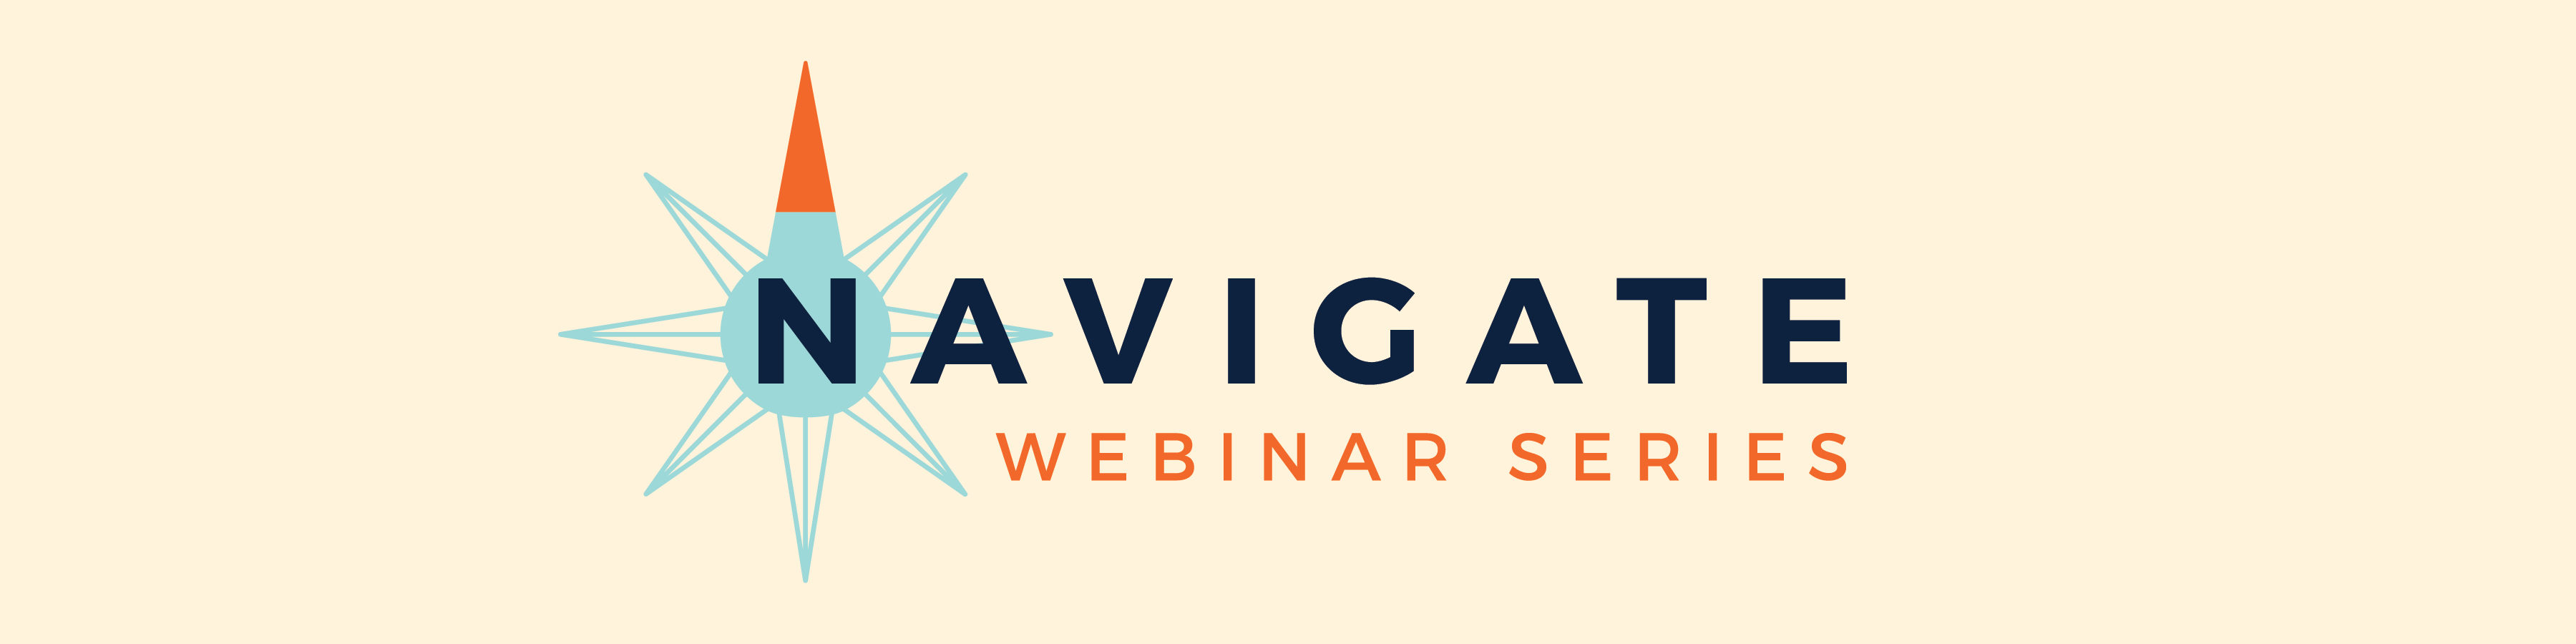 Navigate Webinar Series graphic